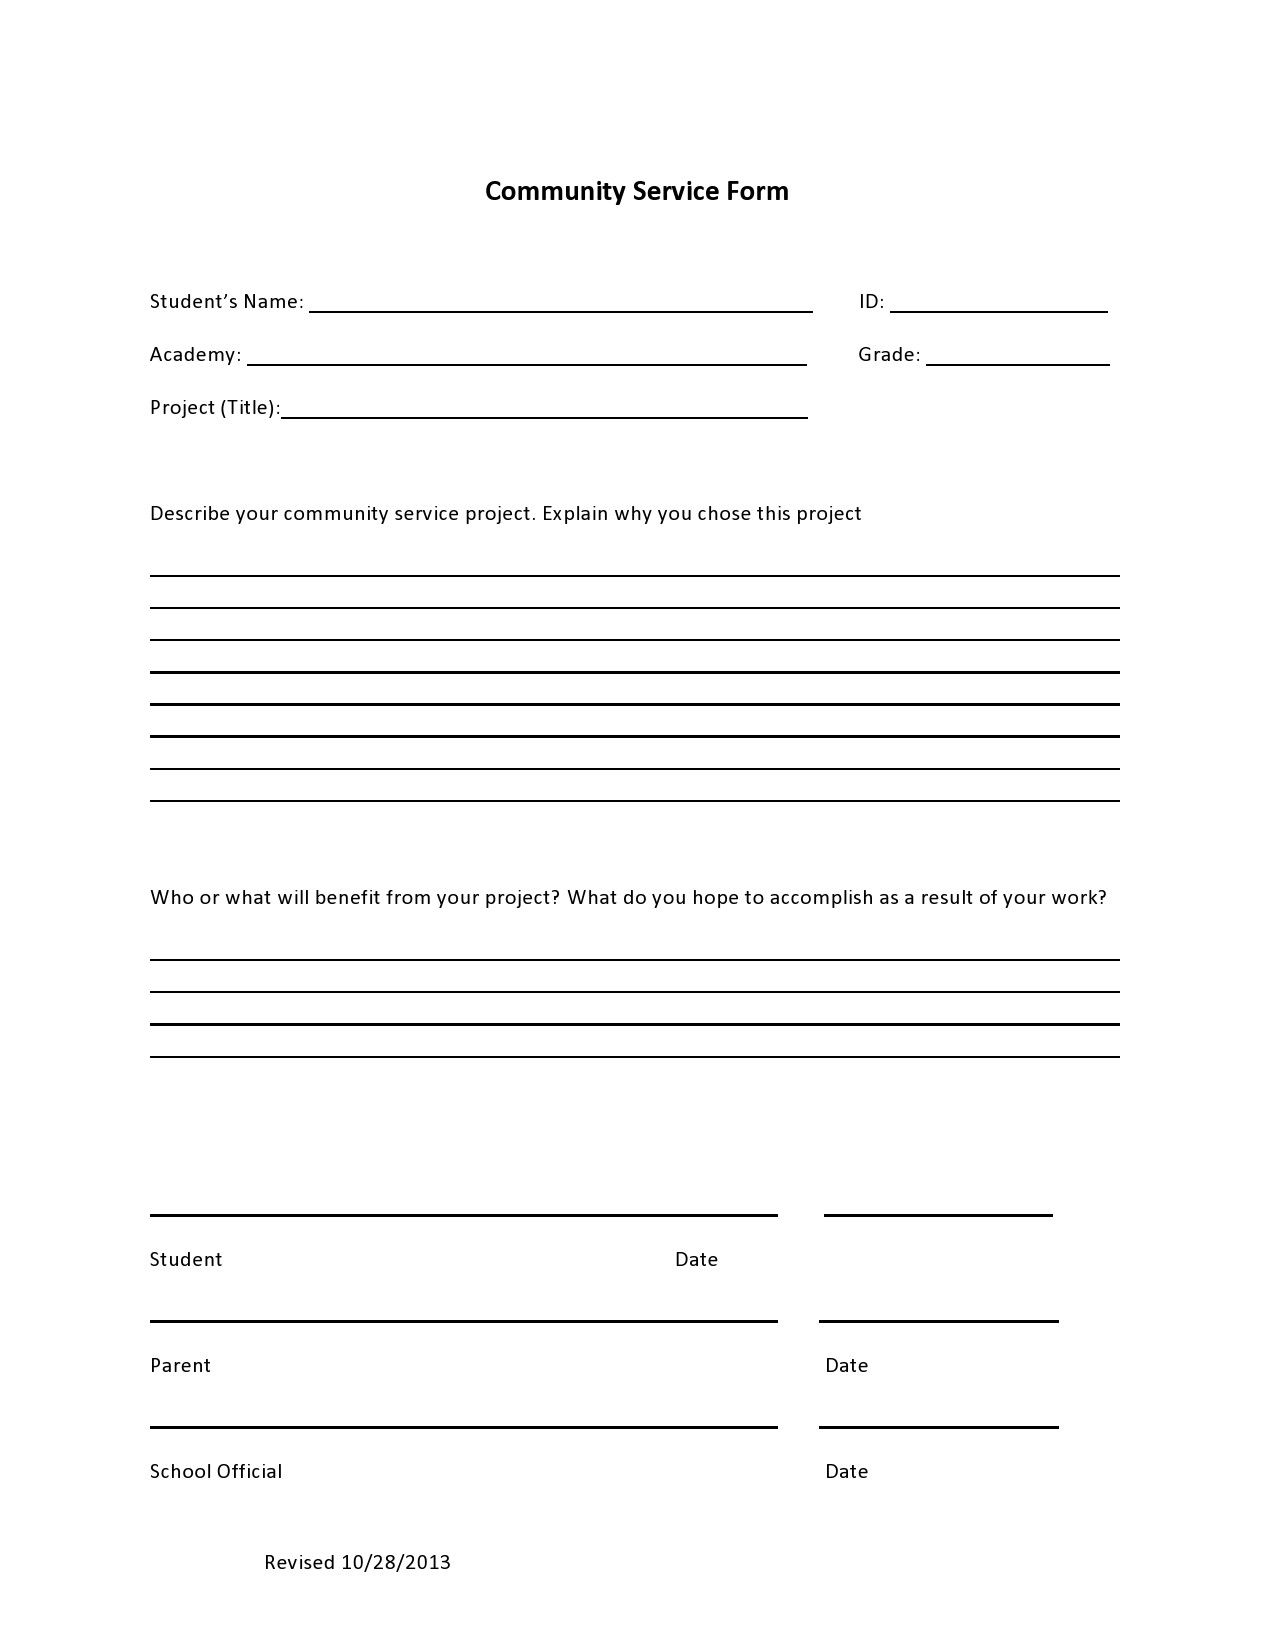 Free community service form 05